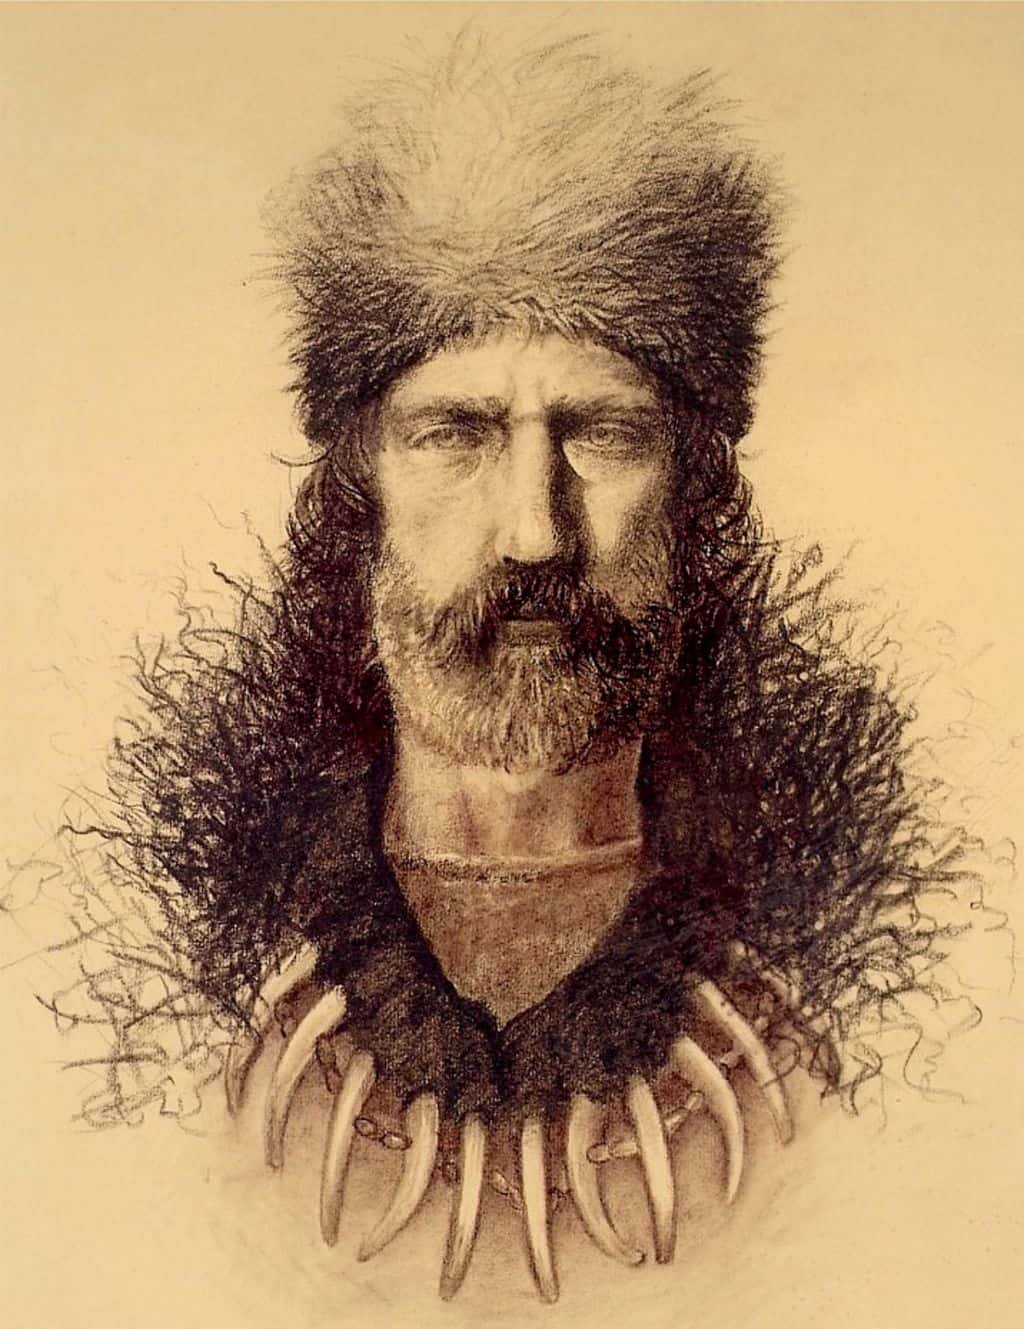 I felt quite rich when I found my knife, flint and steel in my shot pouch: